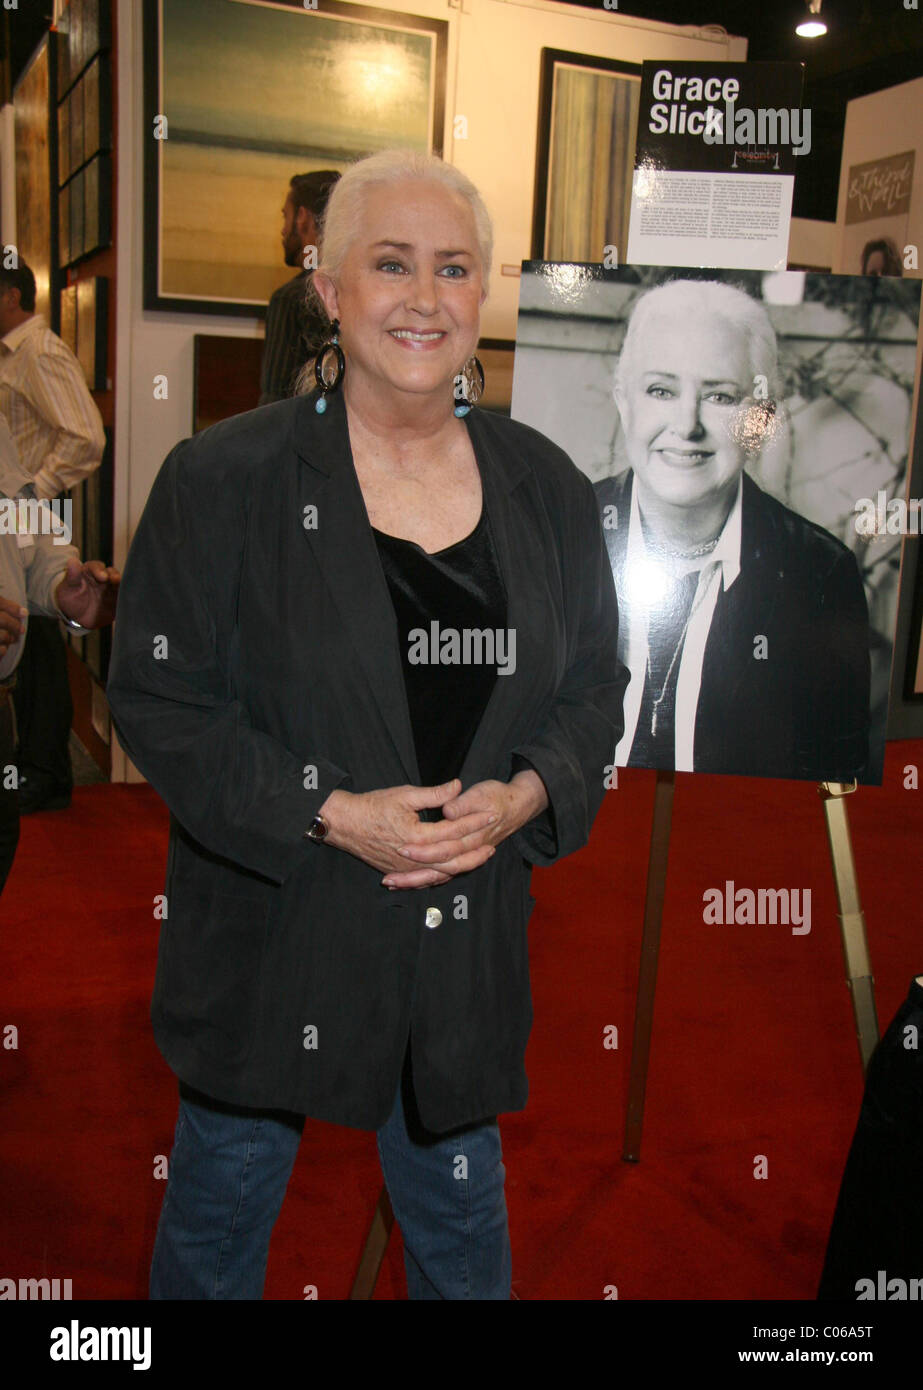 Grace Slick American singer and songwriter, exhibits her paintings and artwork at Mandalay Bay Hotel and Casino Stock Photo